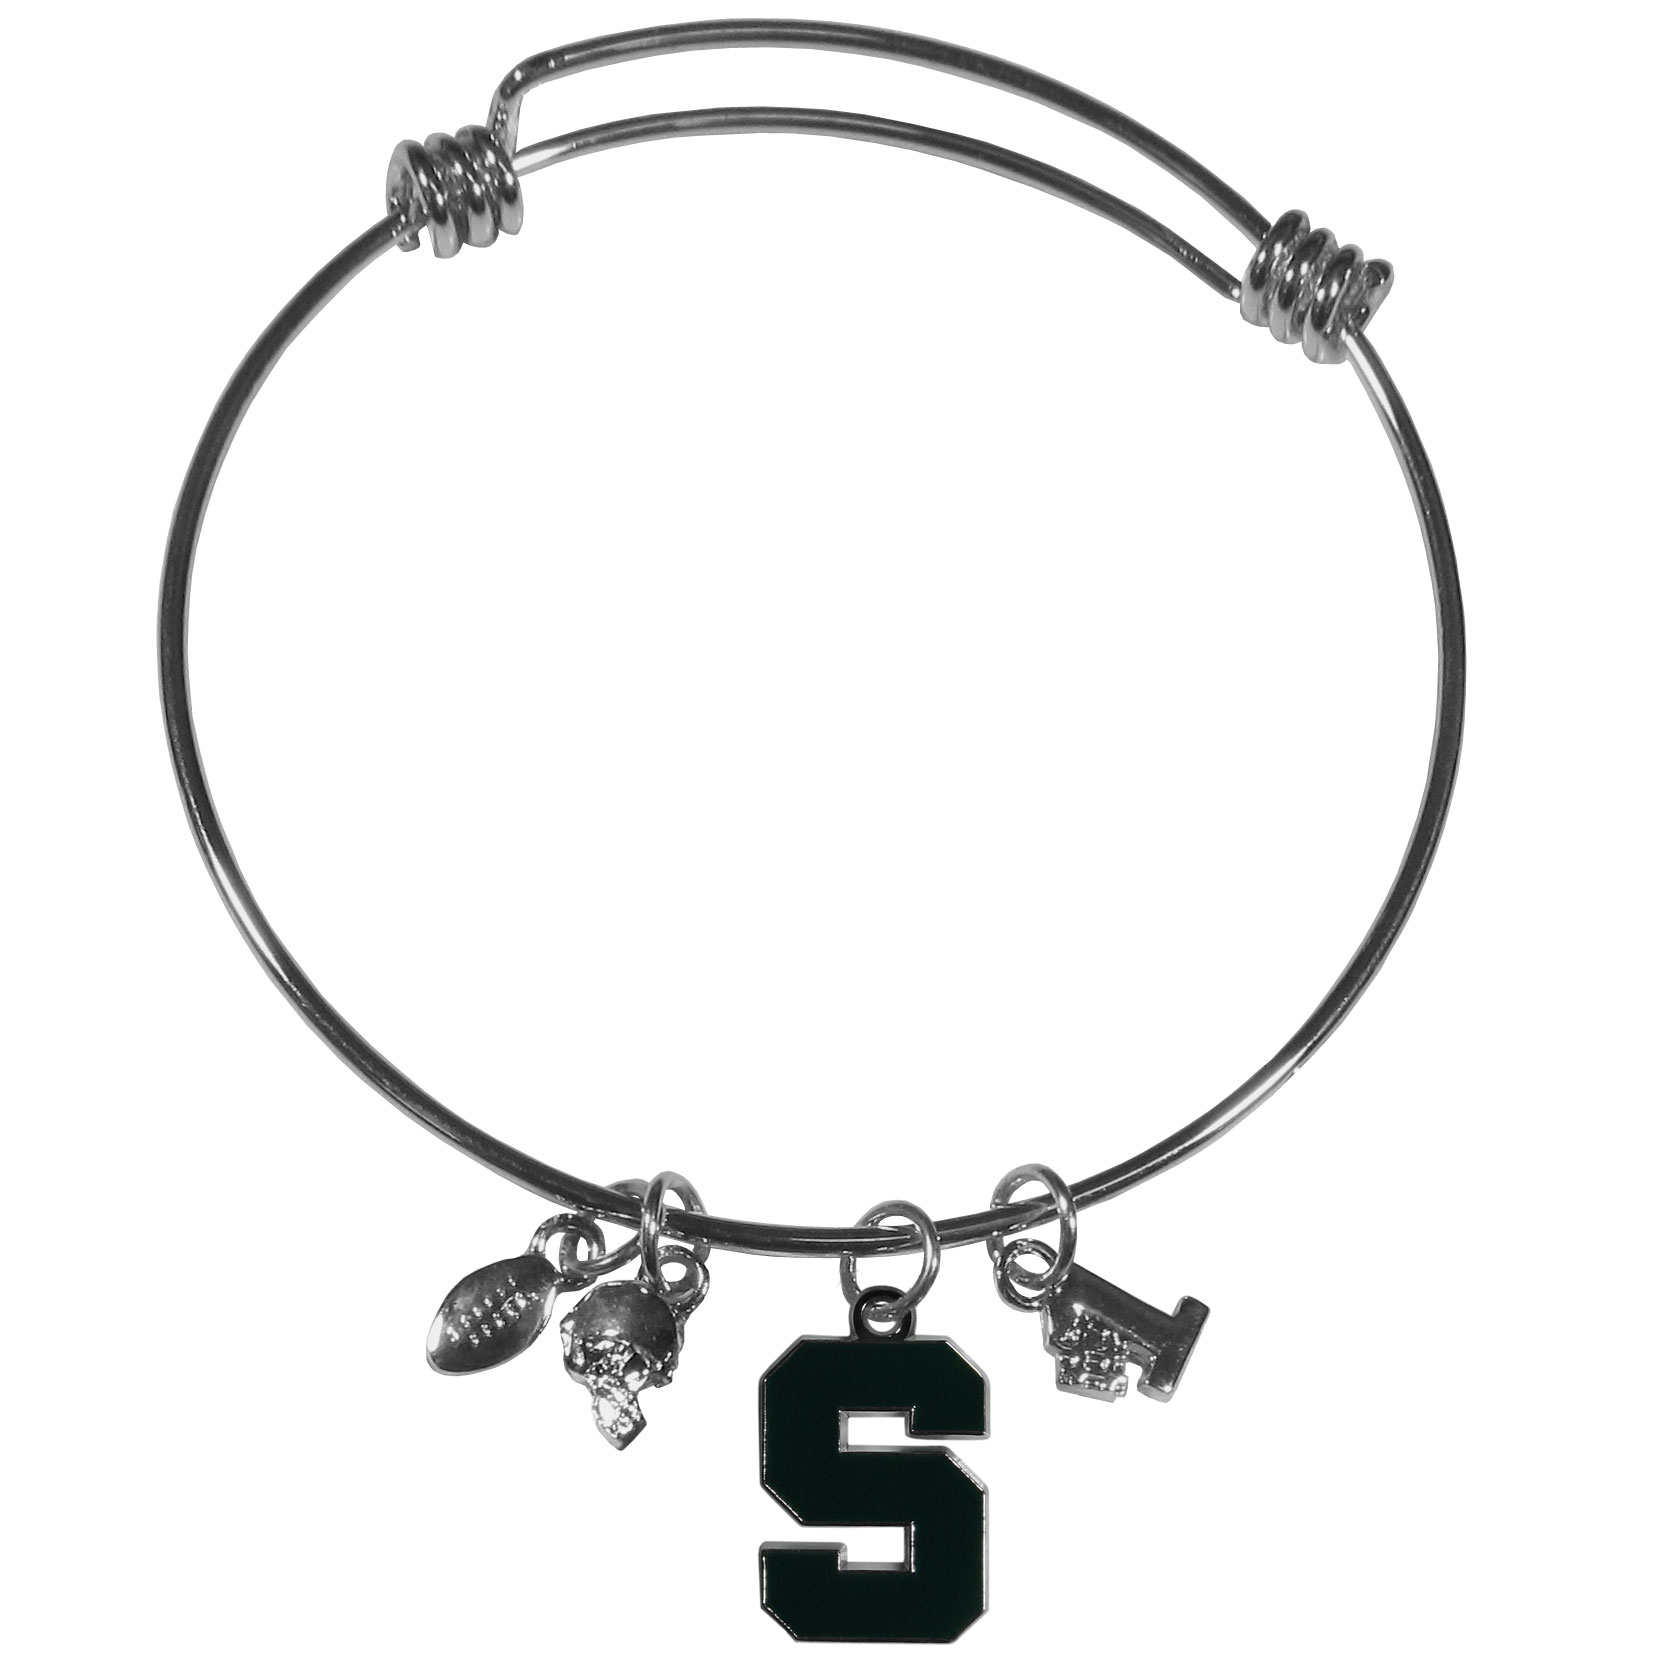 Michigan St. Spartans Charm Bangle Bracelet - Adjustable wire bracelets are all the rage and this Michigan St. Spartans bracelet matches the popular trend with your beloved team. The bracelet features 4 charms in total, each feature exceptional detail and the team charm has enameled team colors.